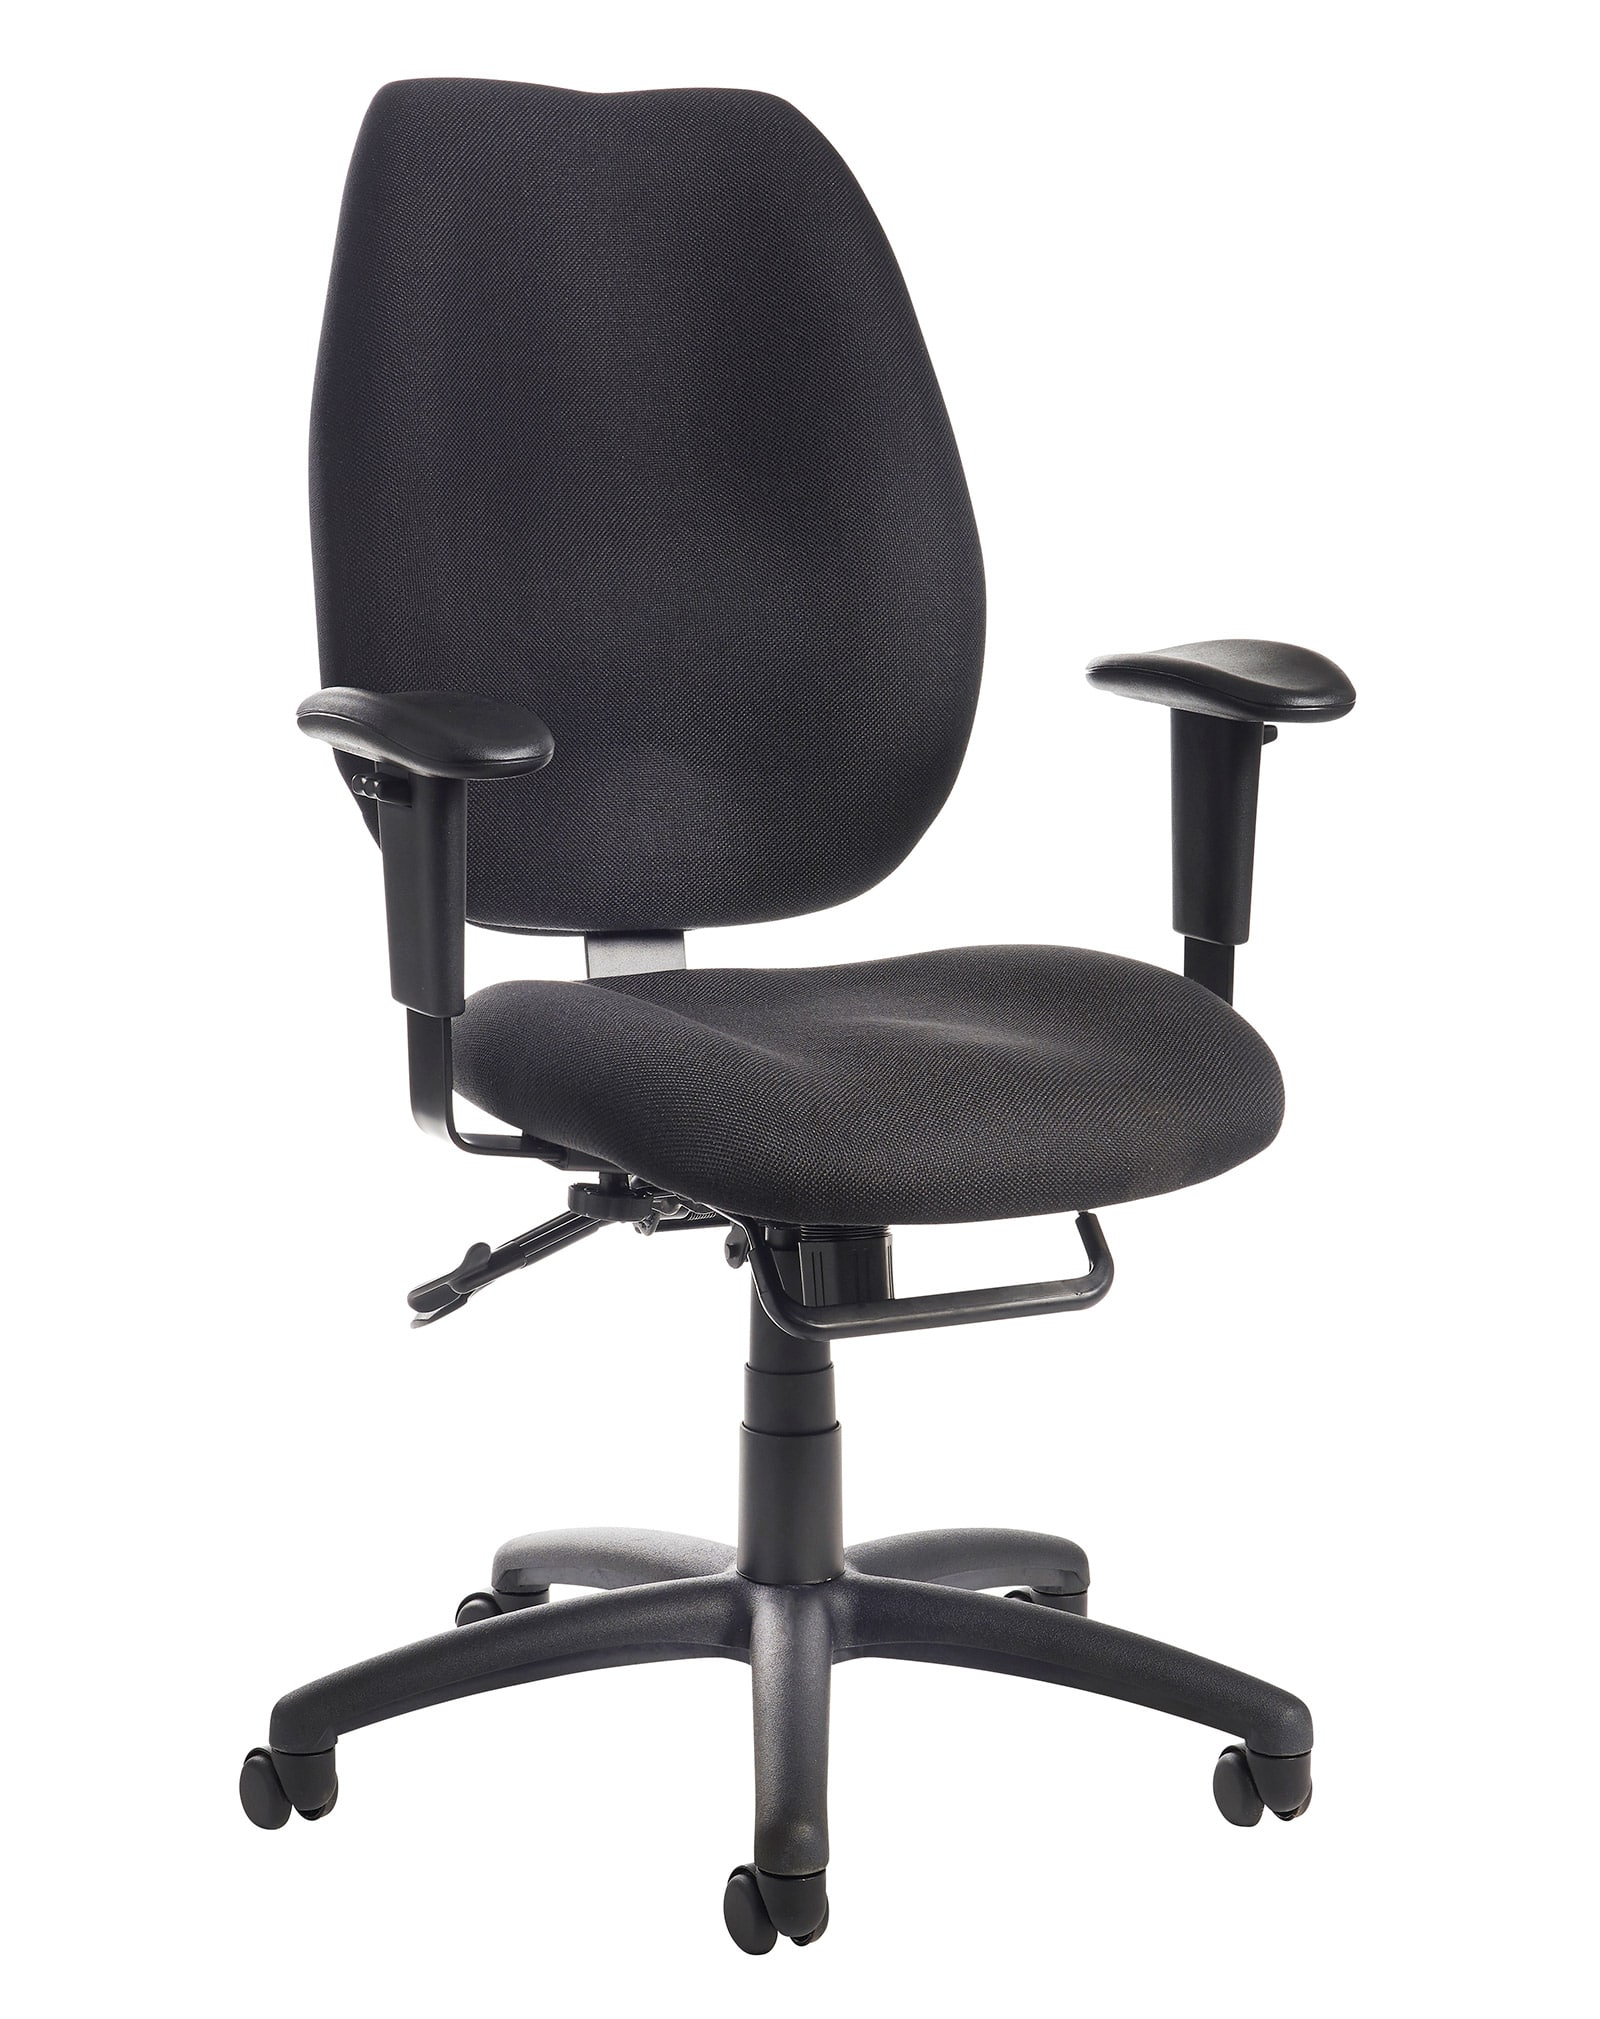 Twyford multi function task chair unique postural solutions for Function chairs